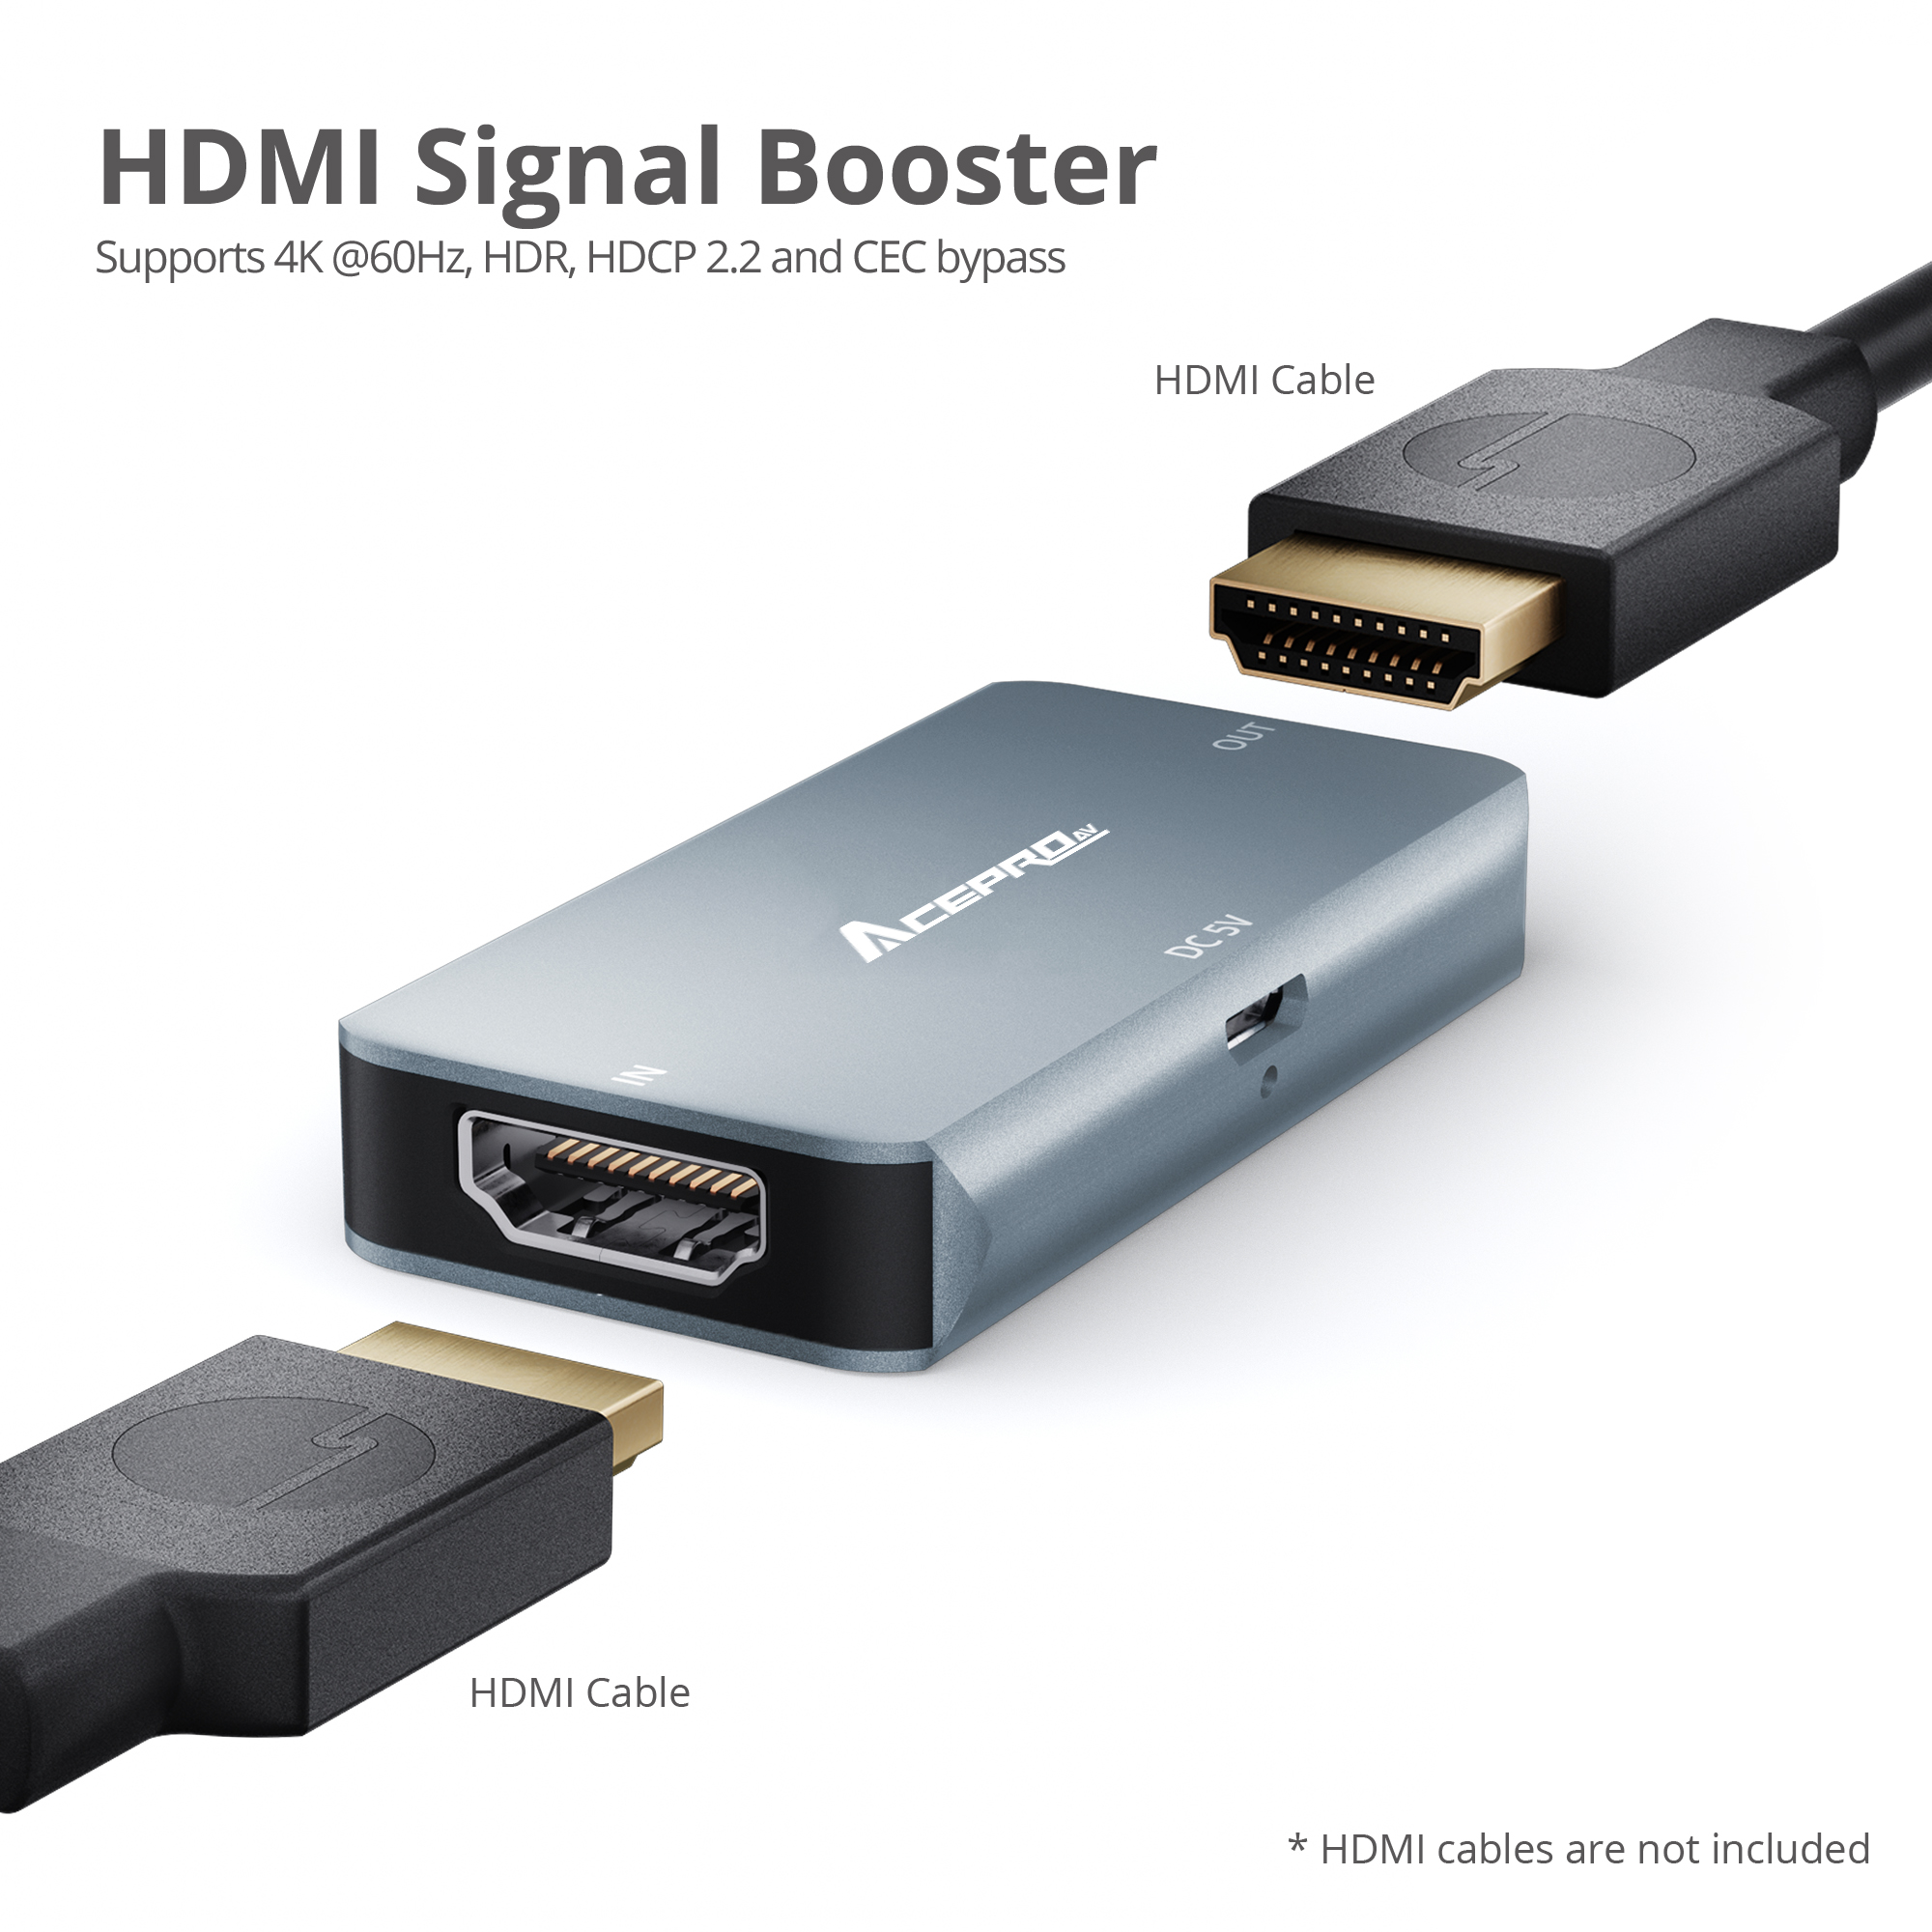 AcerPro HDMI 2 0 4K HDR Repeater | AVLT Technology| Found by AVLAB